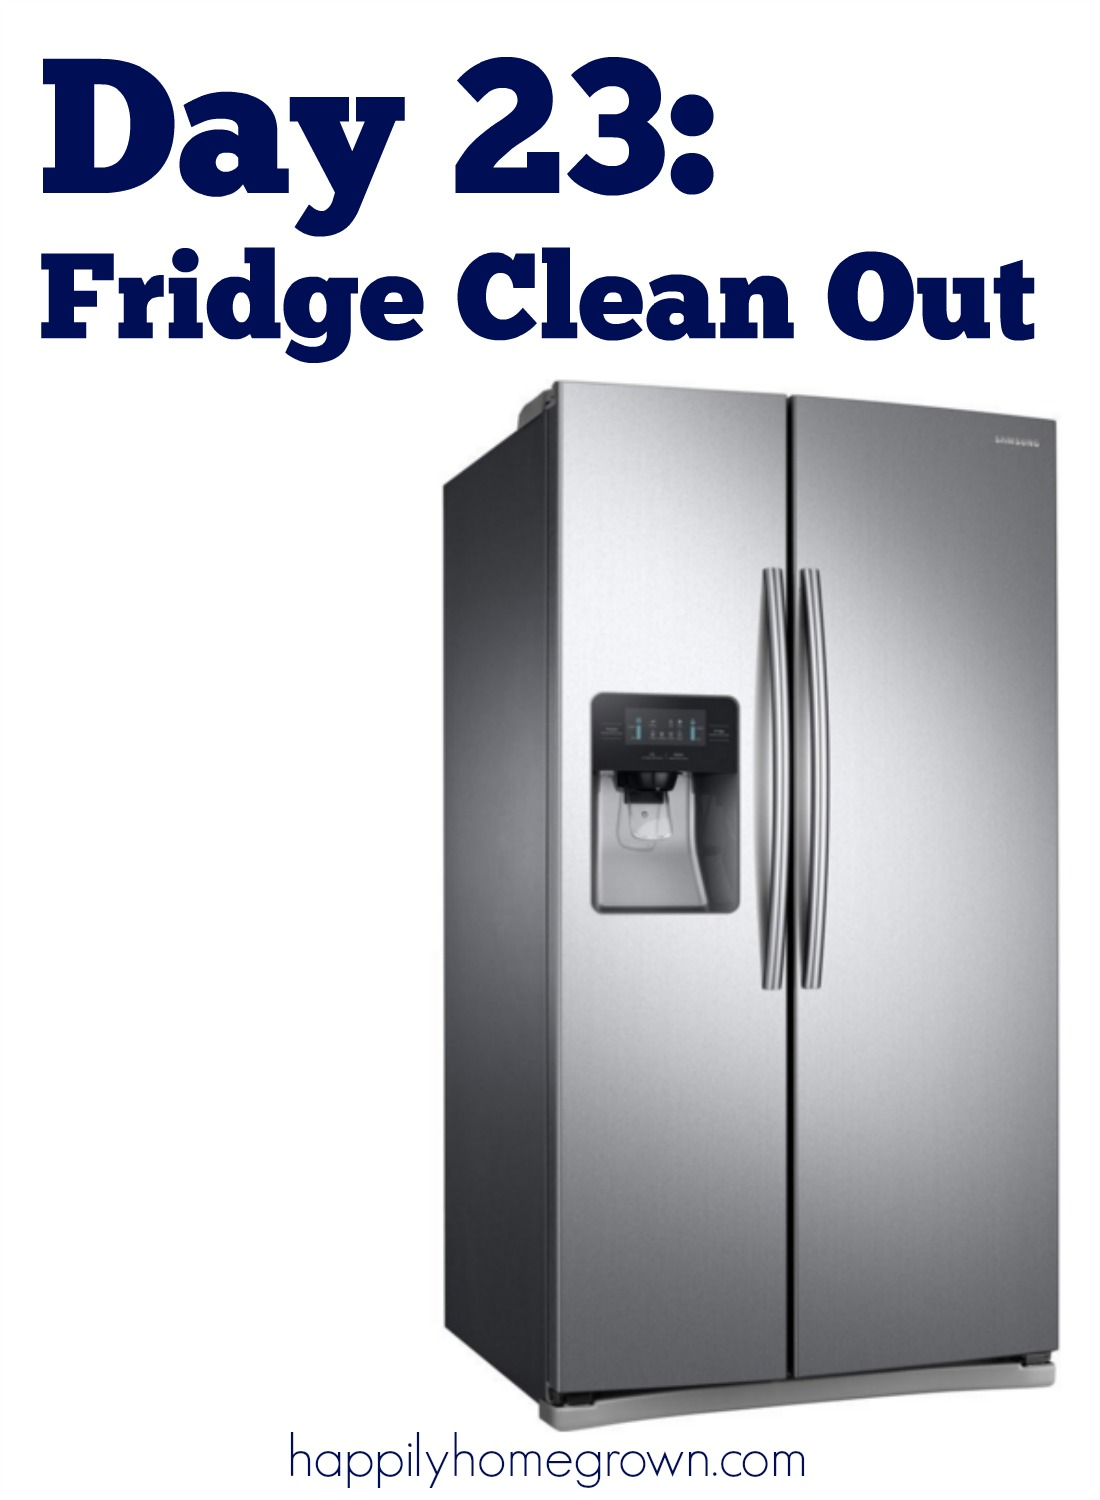 Fridge clean out is the chore we all know that we need to do, but none of us want to do. Here are a few tips to make it easier.